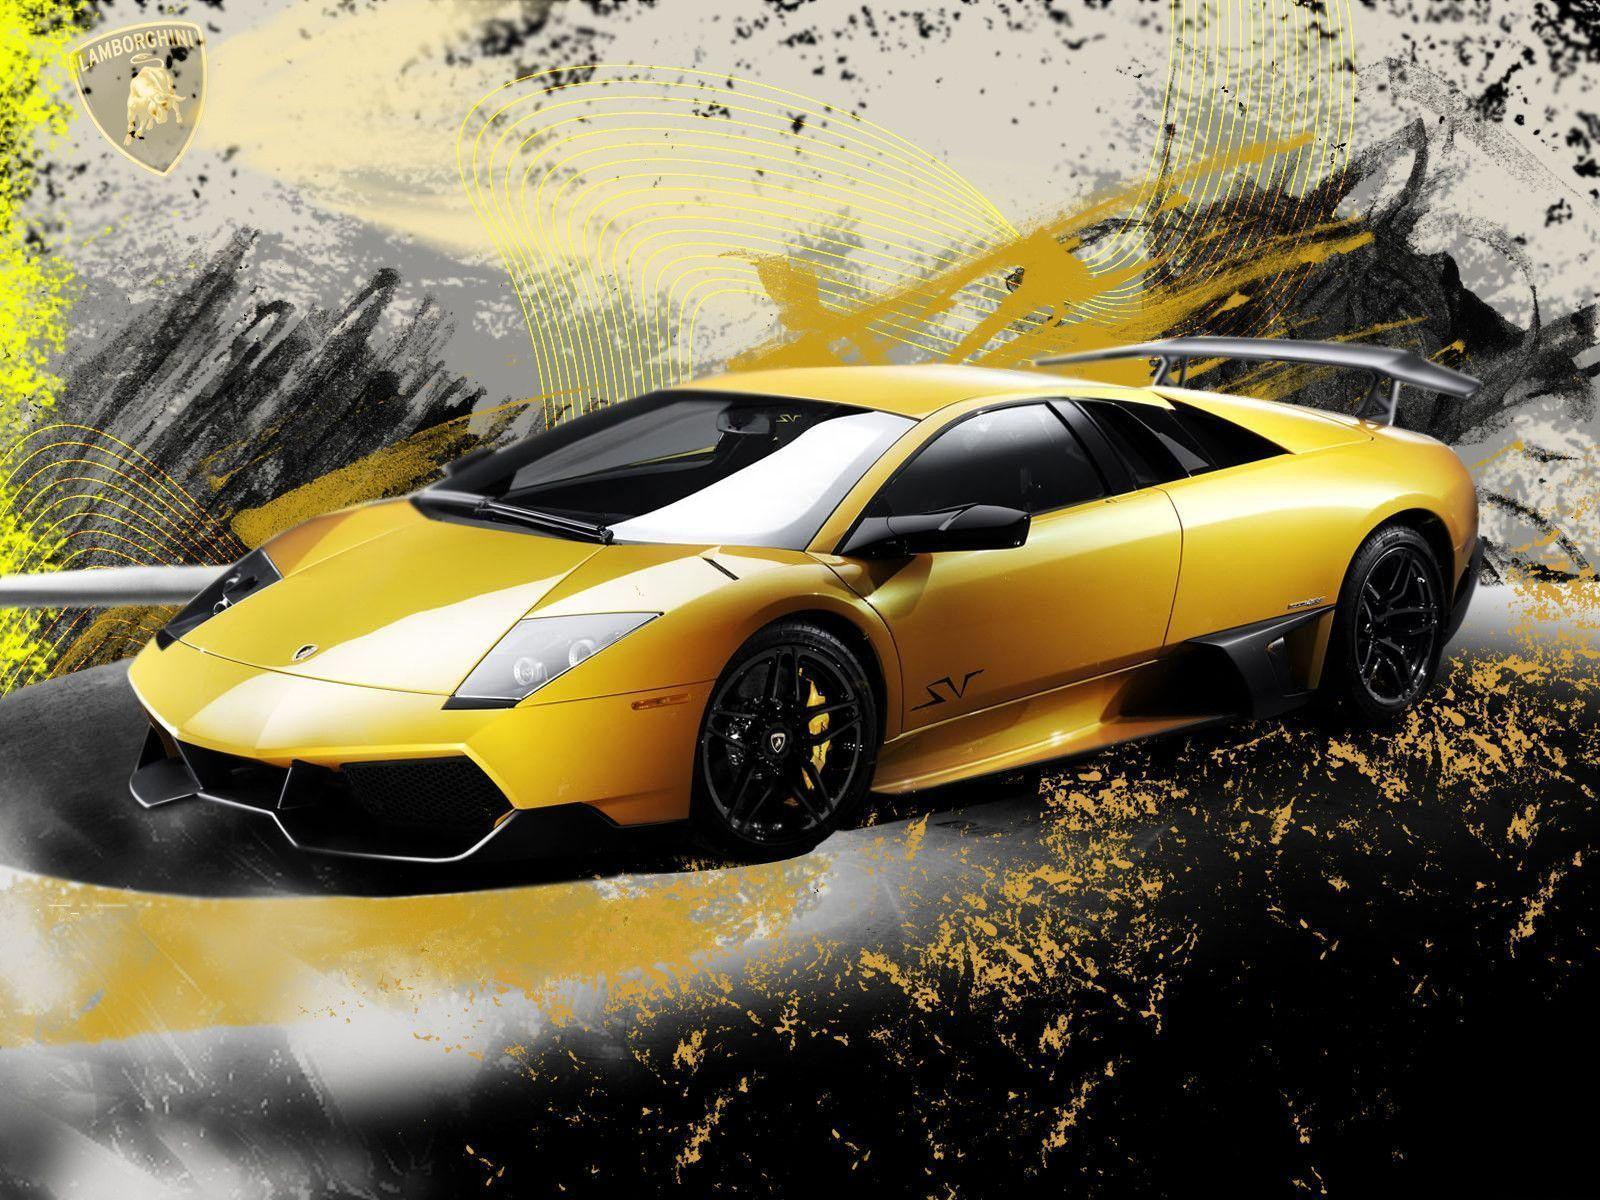 Watch - Cars stylish wallpapers for desktop video